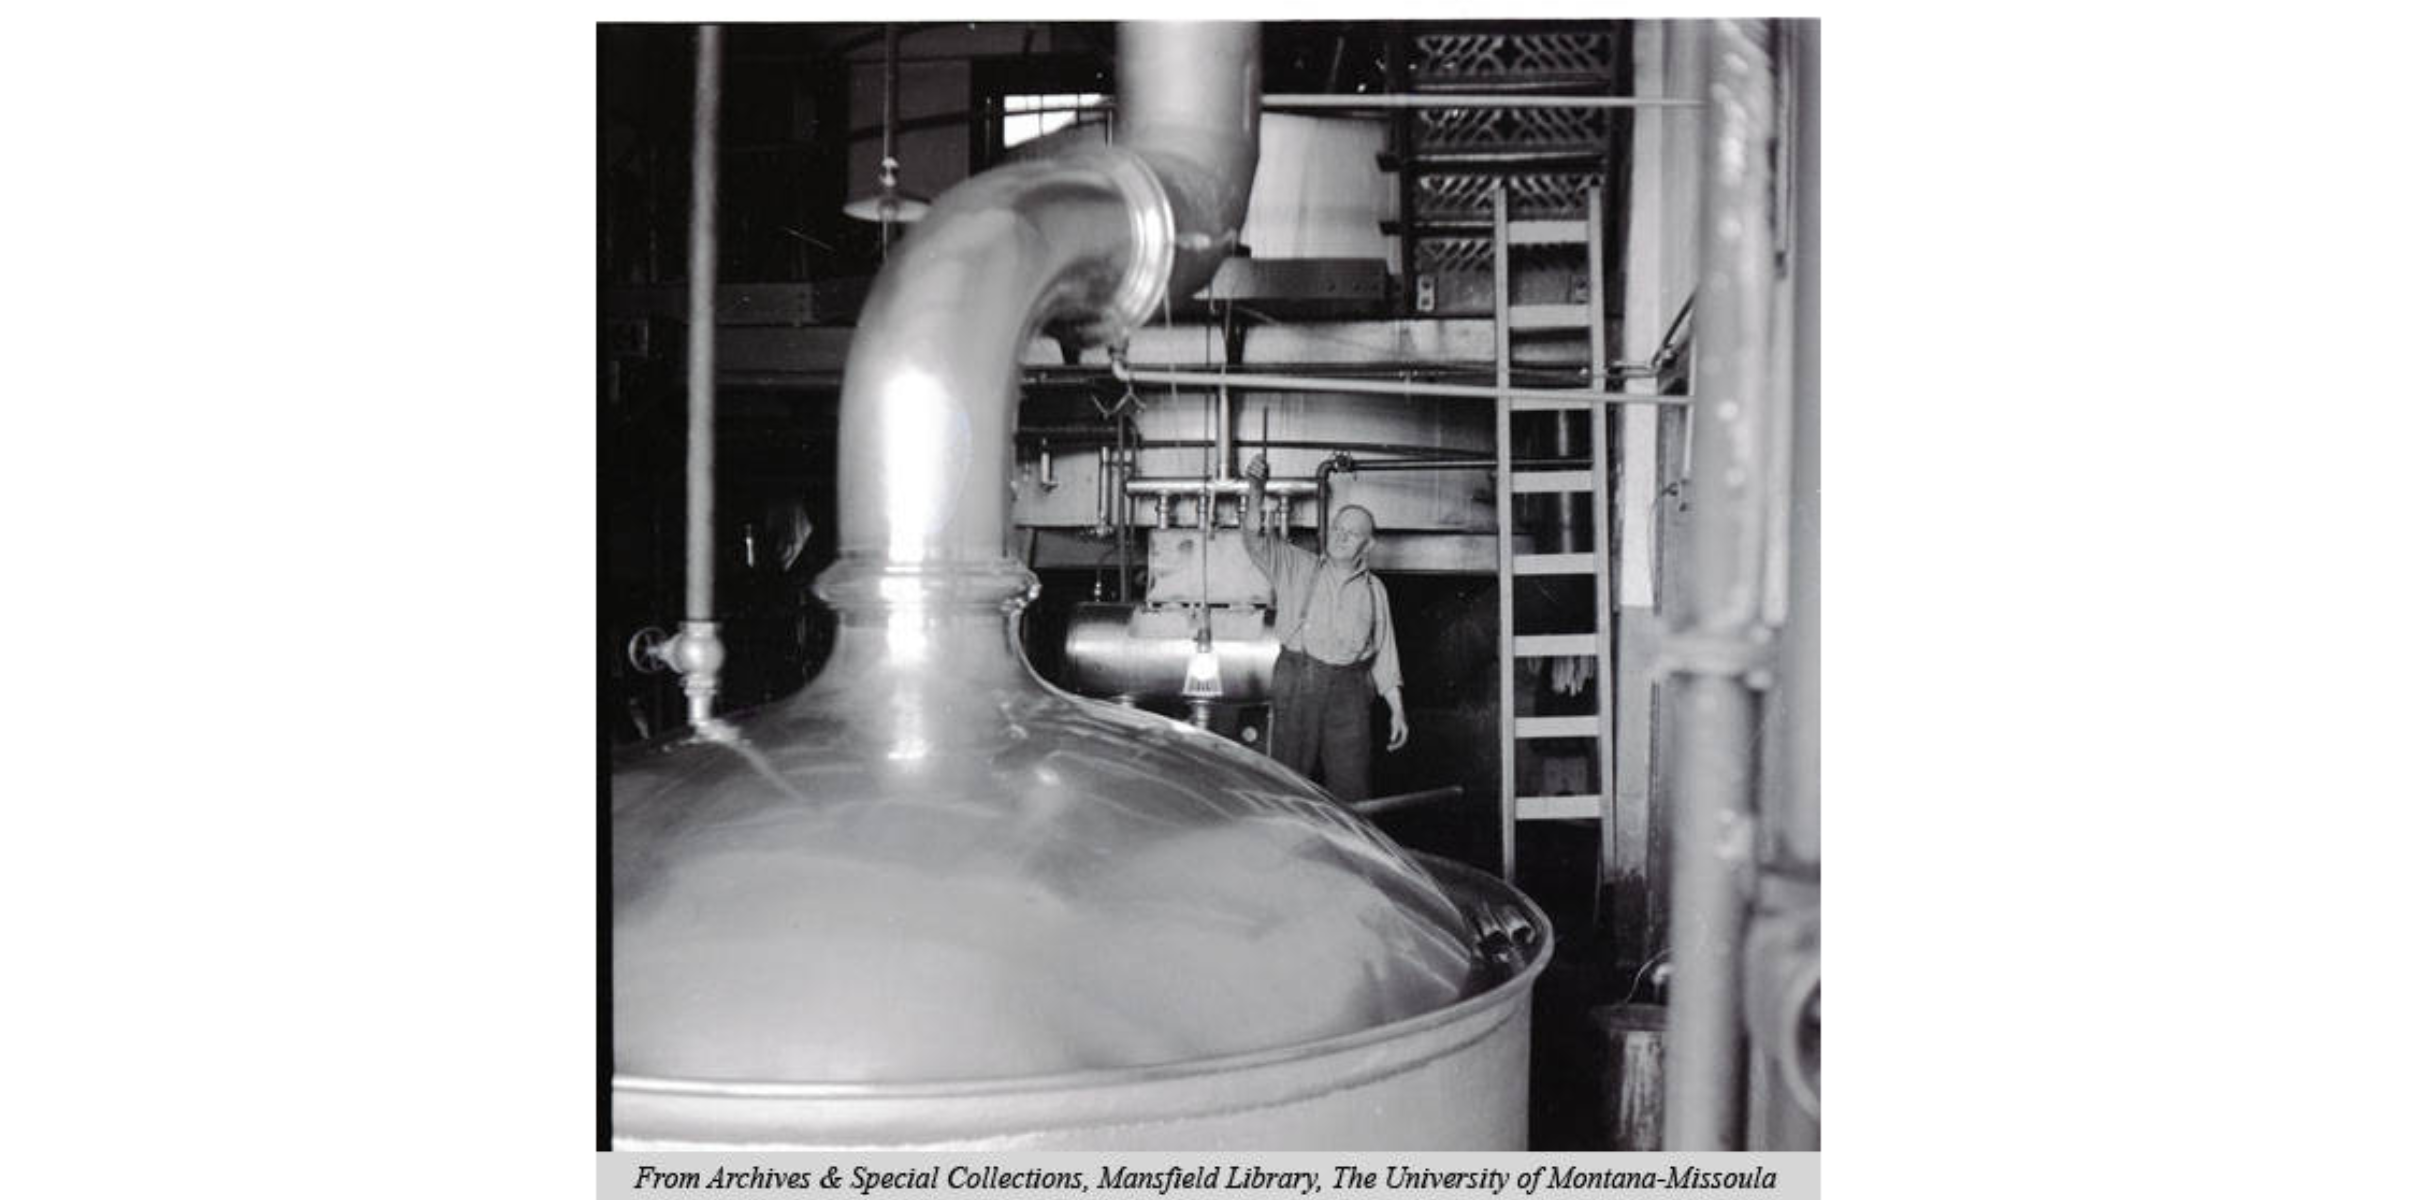 Brewing Tank in the Garden City Brewery, unknown date